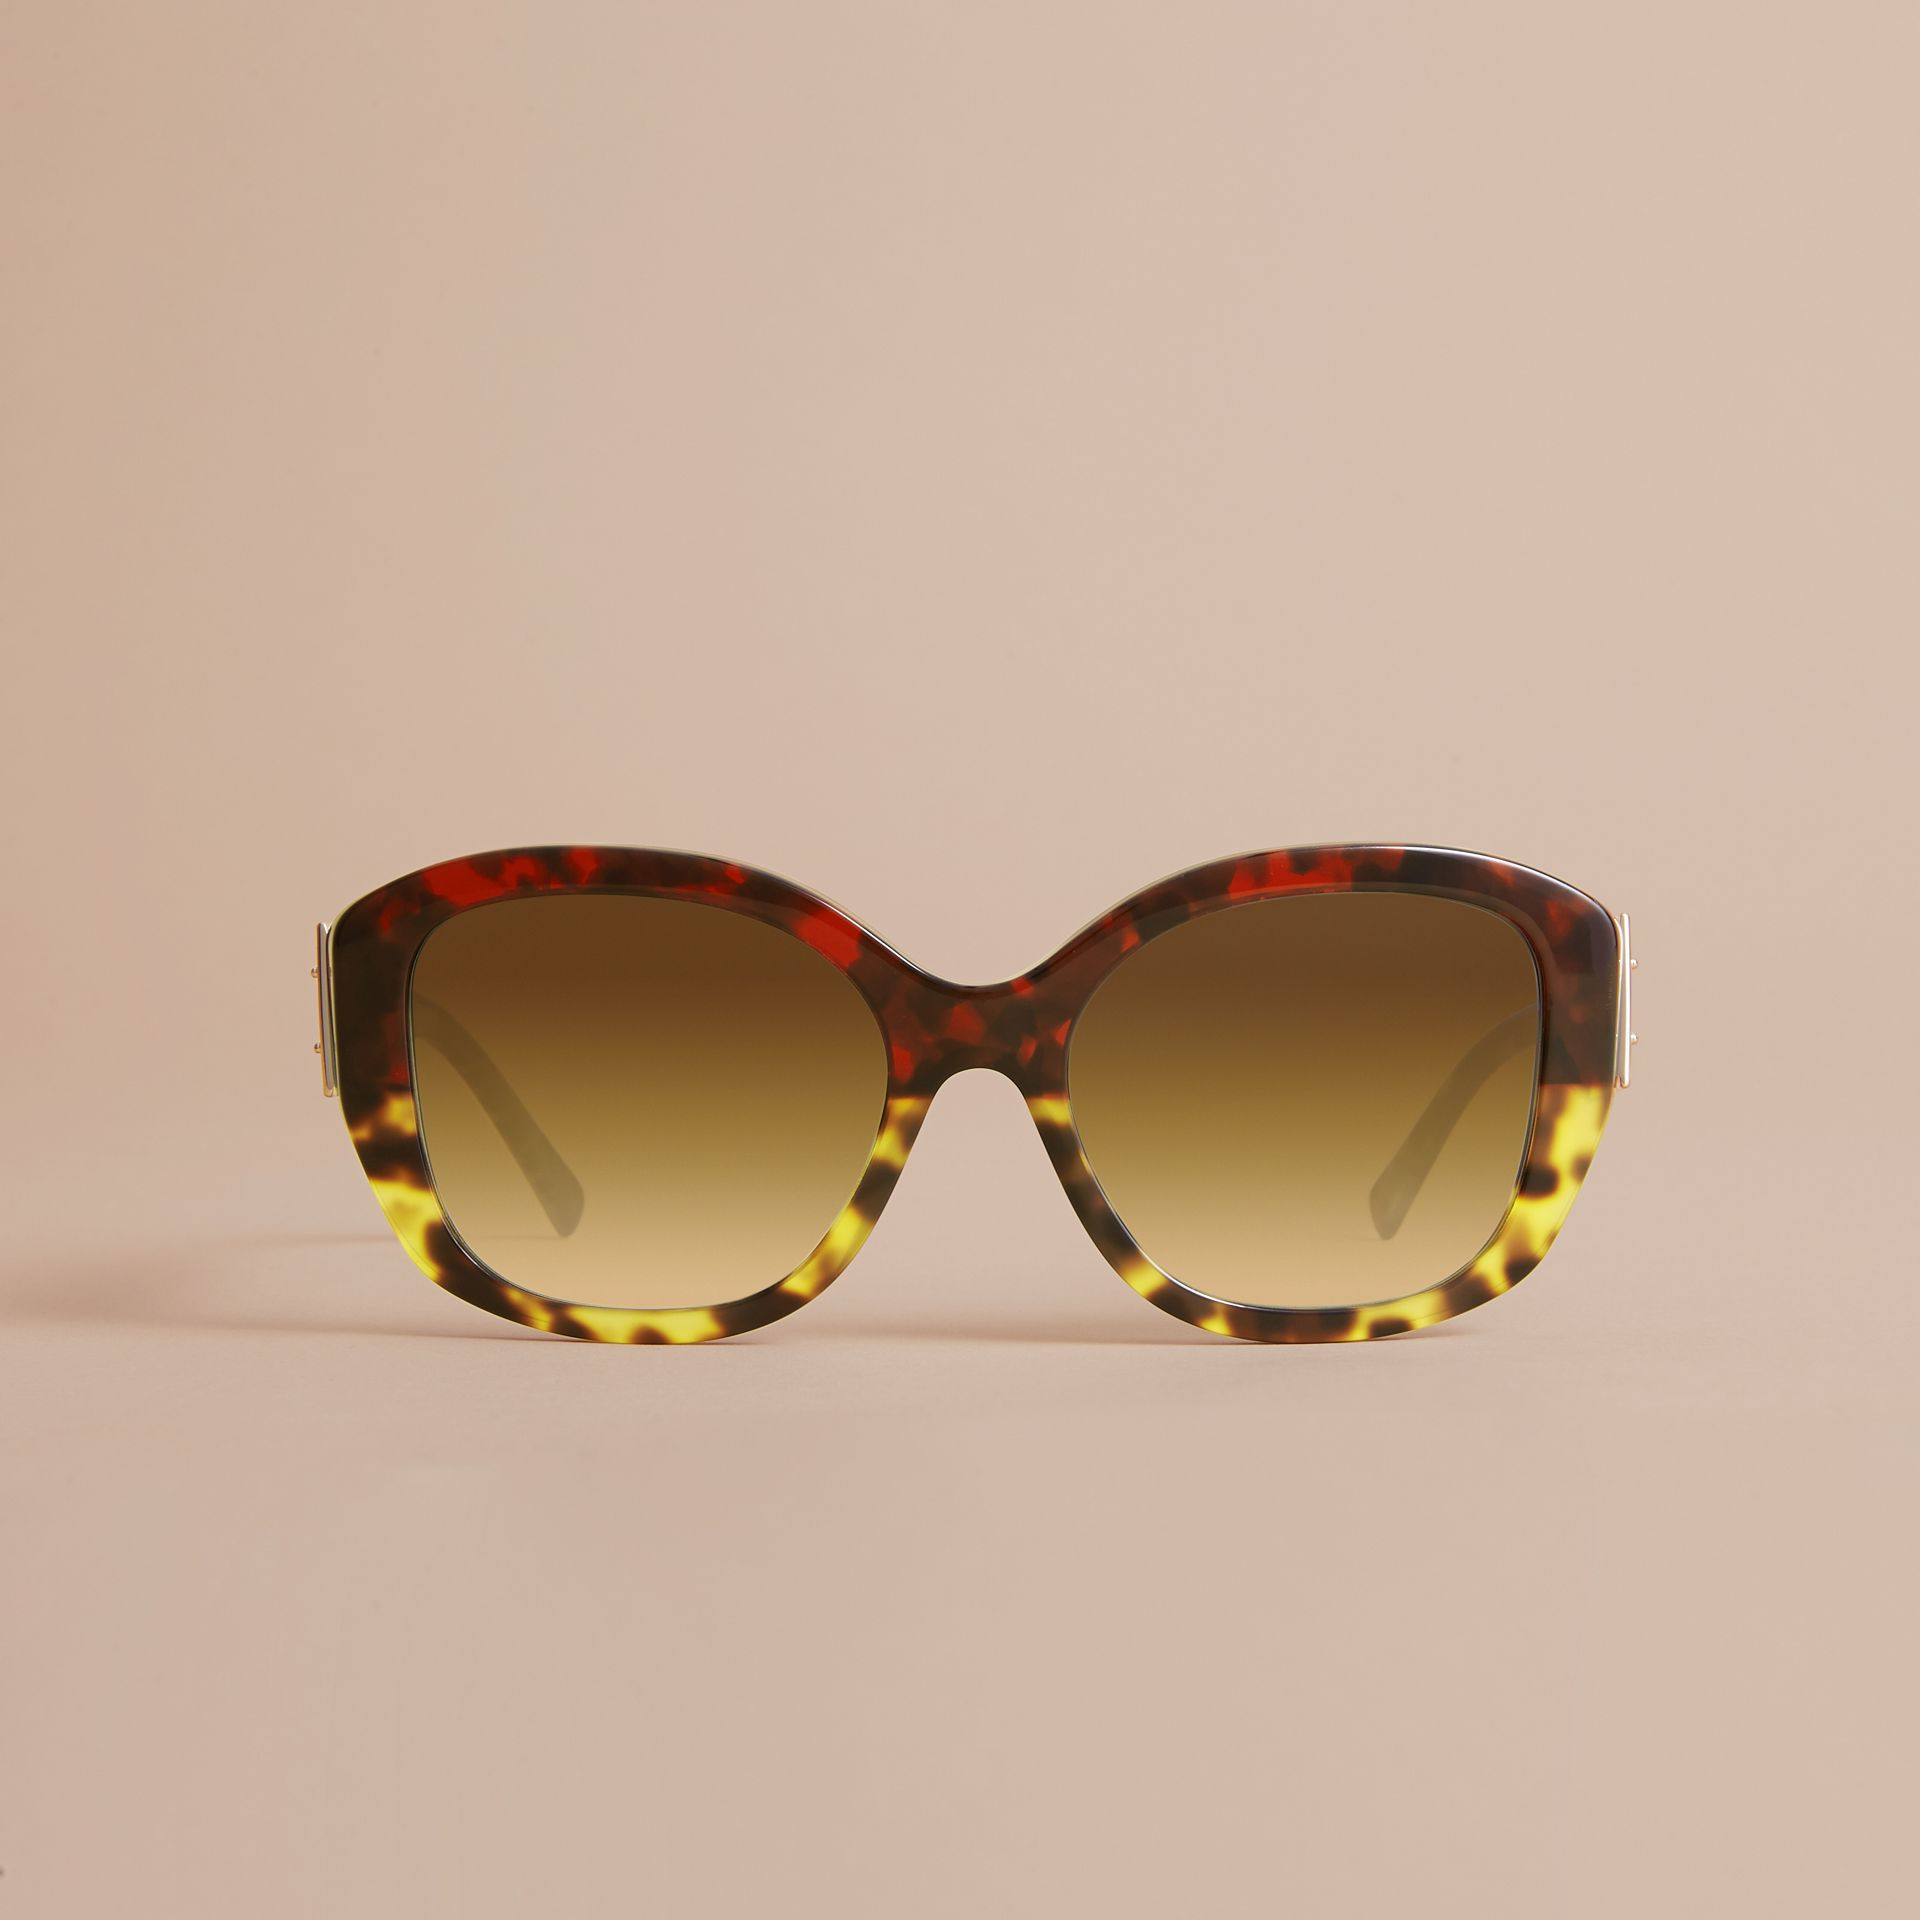 Buckle Detail Oversize Square Frame Sunglasses in Amber Yellow - Women | Burberry United States - gallery image 2